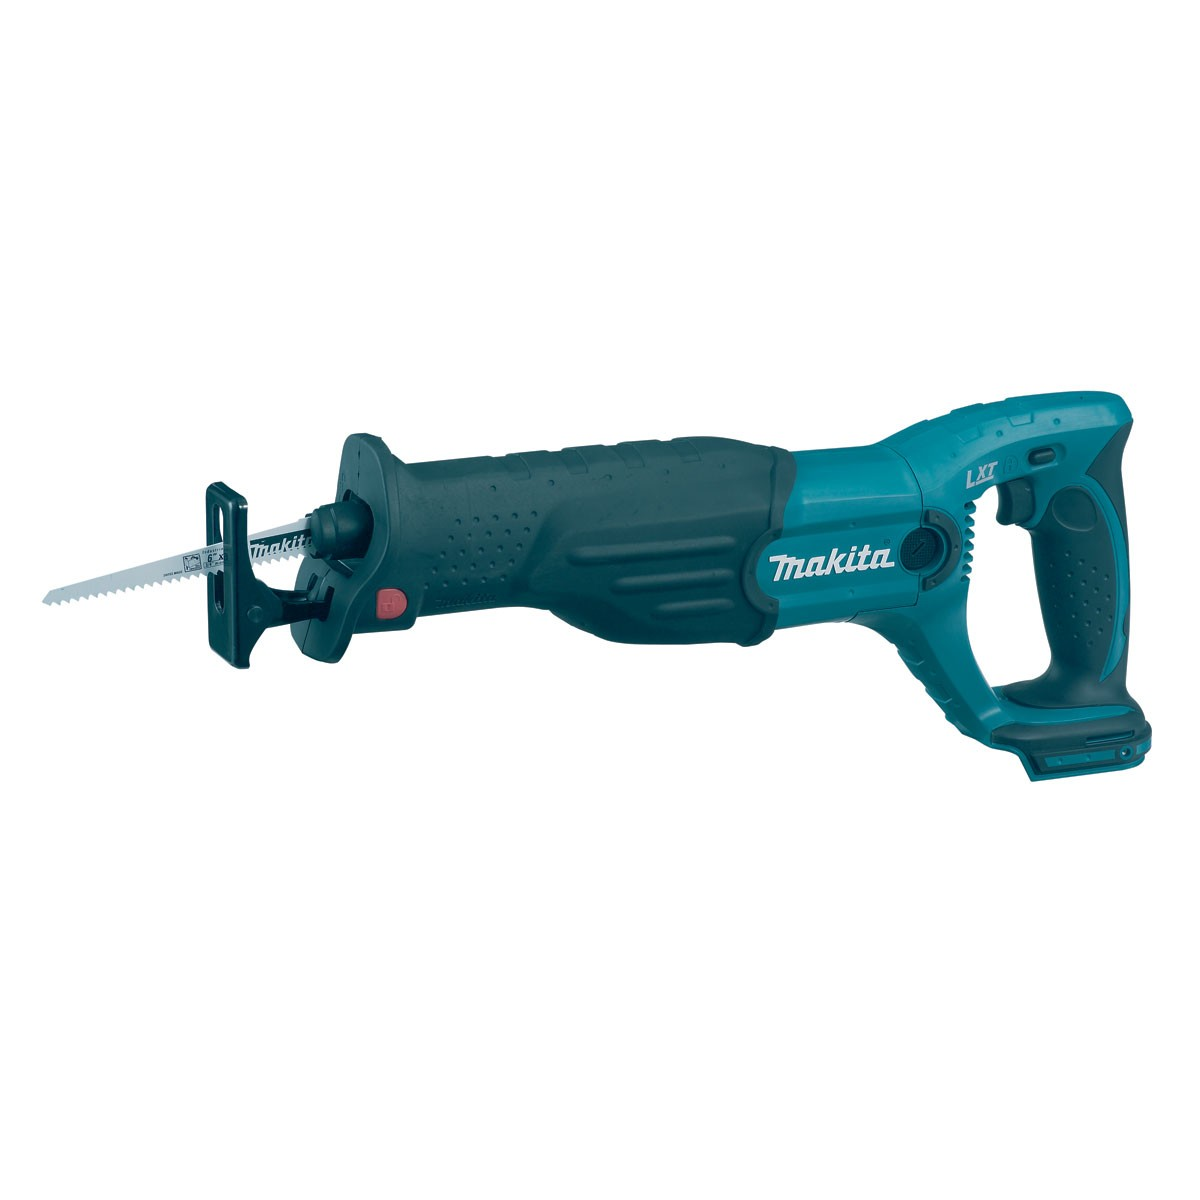 Makita DJR182Z 18v Cordless Reciprocating Saw Body Only